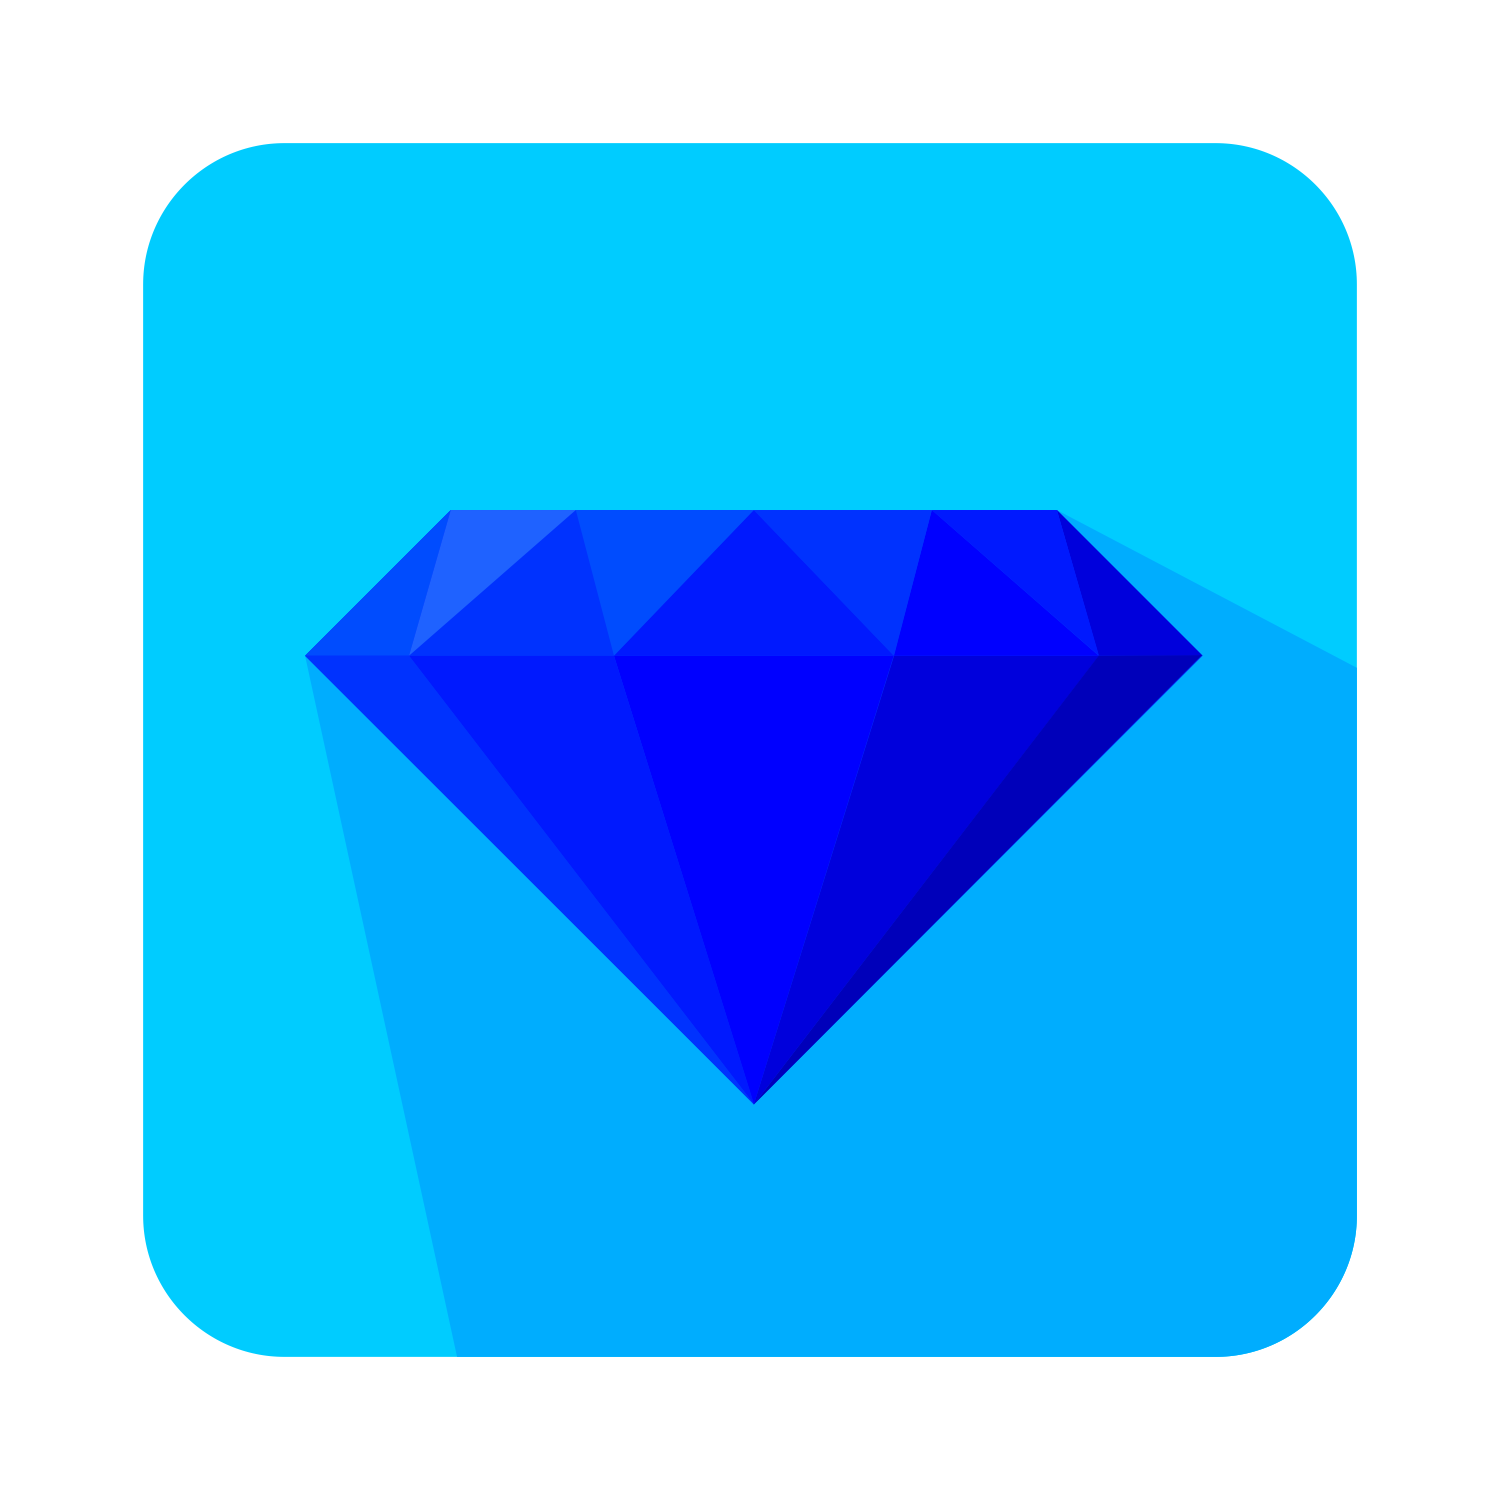 diamond vector free download - photo #44